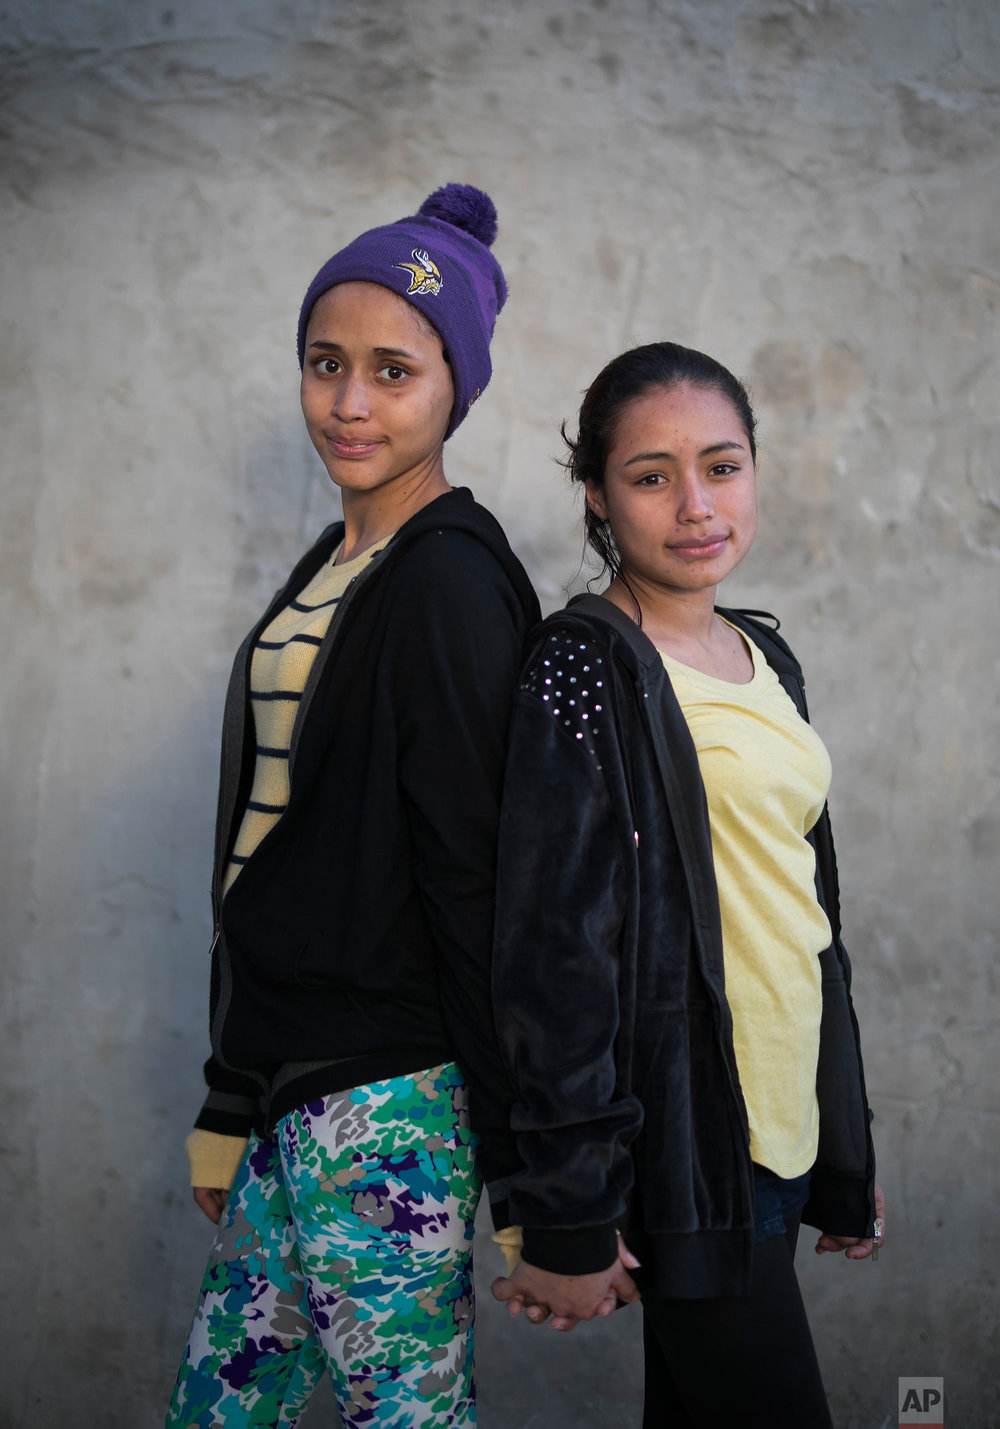 El Salvador migrant sisters 15-year-old Milagro de Jesus Henriquez Ayala, who is pregnant, and Xiomara, 13, pose for a portrait at the Agape World Mission shelter in Tijuana, Mexico, Feb. 6, 2019. (AP Photo/Emilio Espejel)